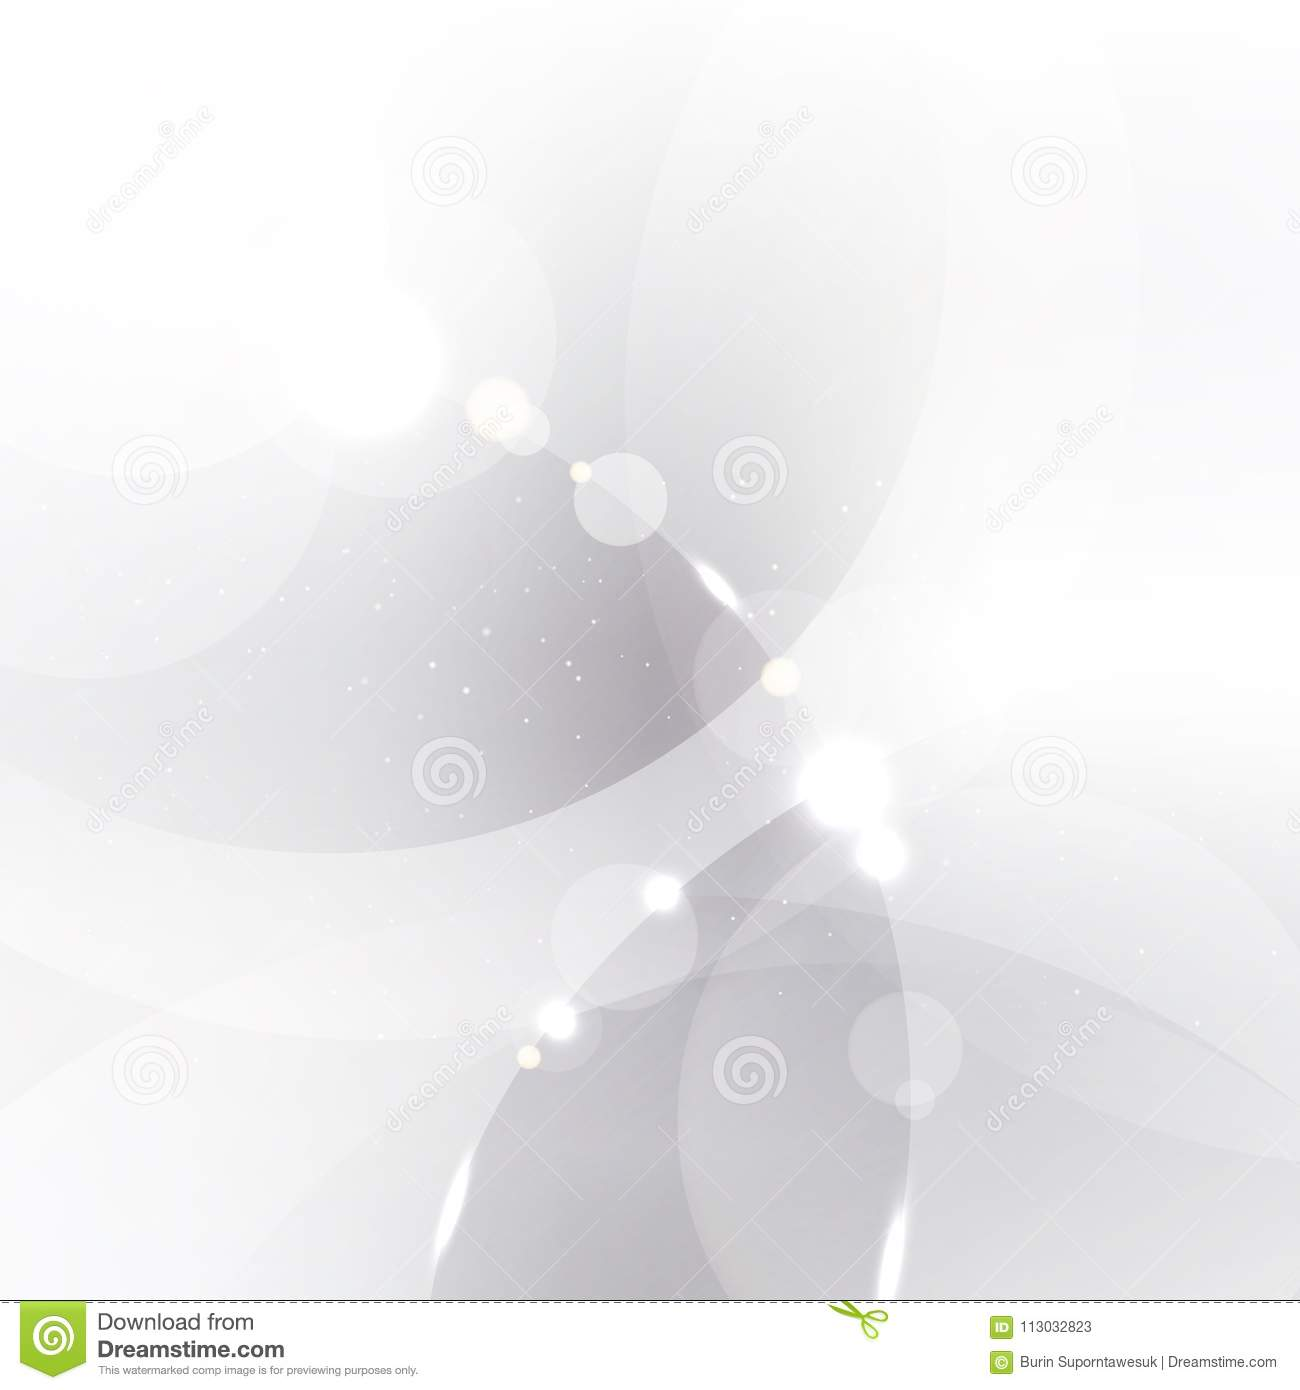 Abstract silver background with white and gray circles overlay a